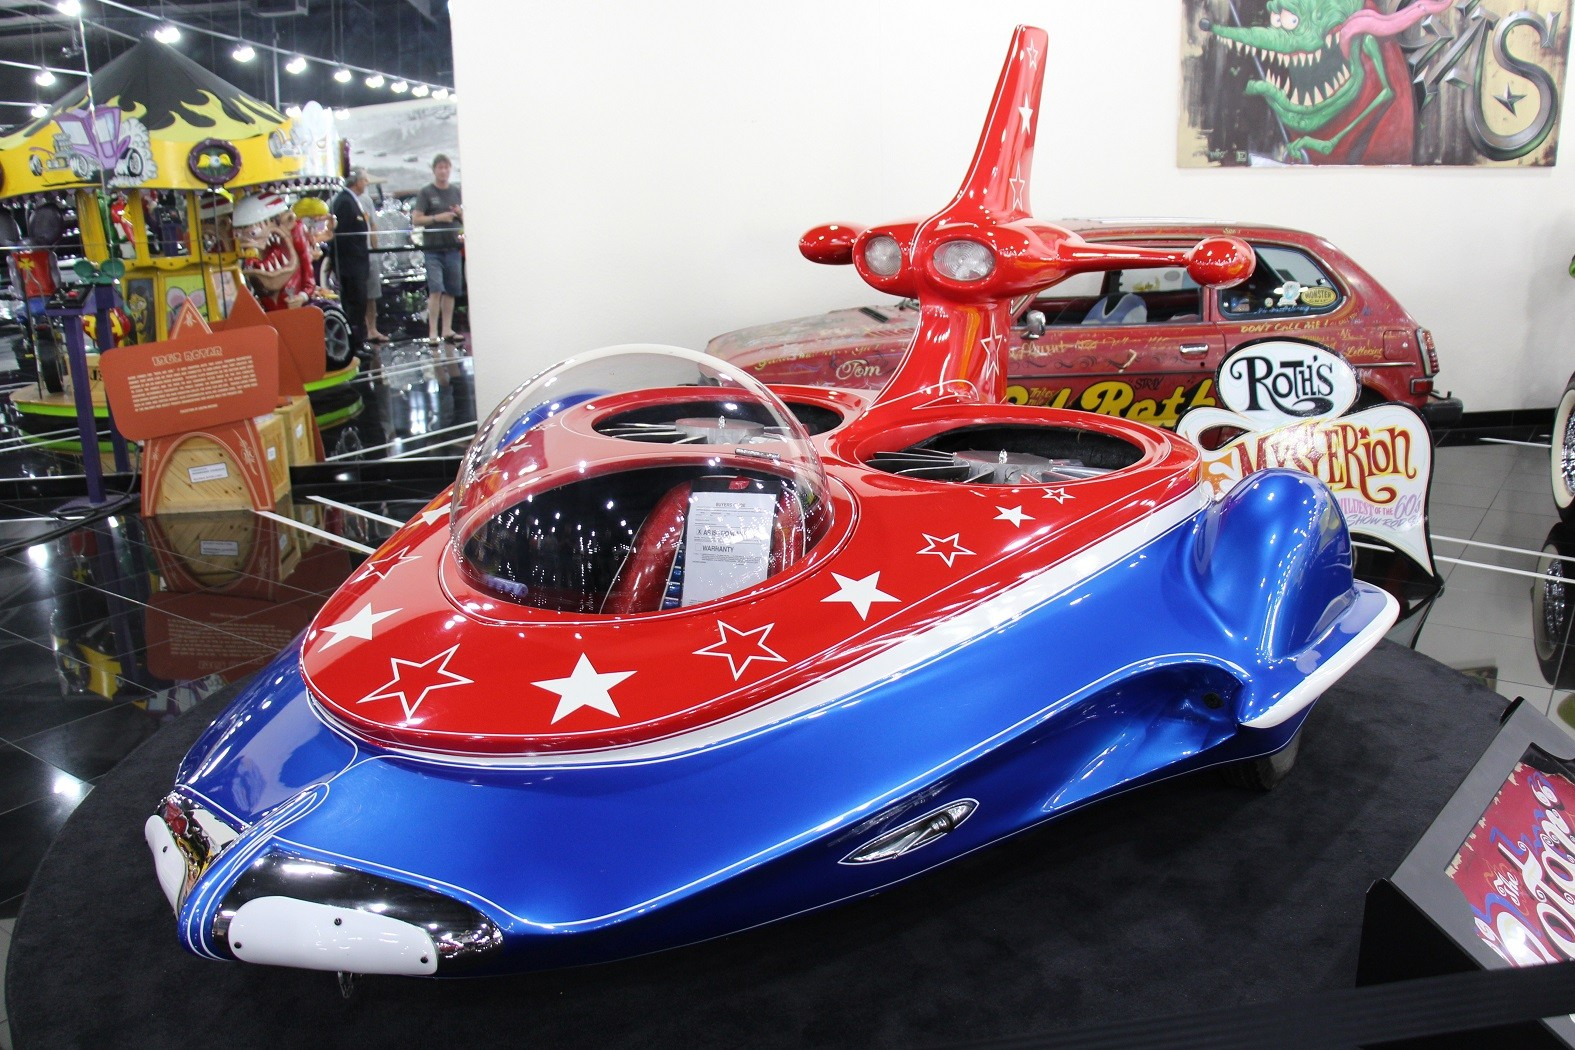 Ed Roth: The Car Customization King Of The 1960s